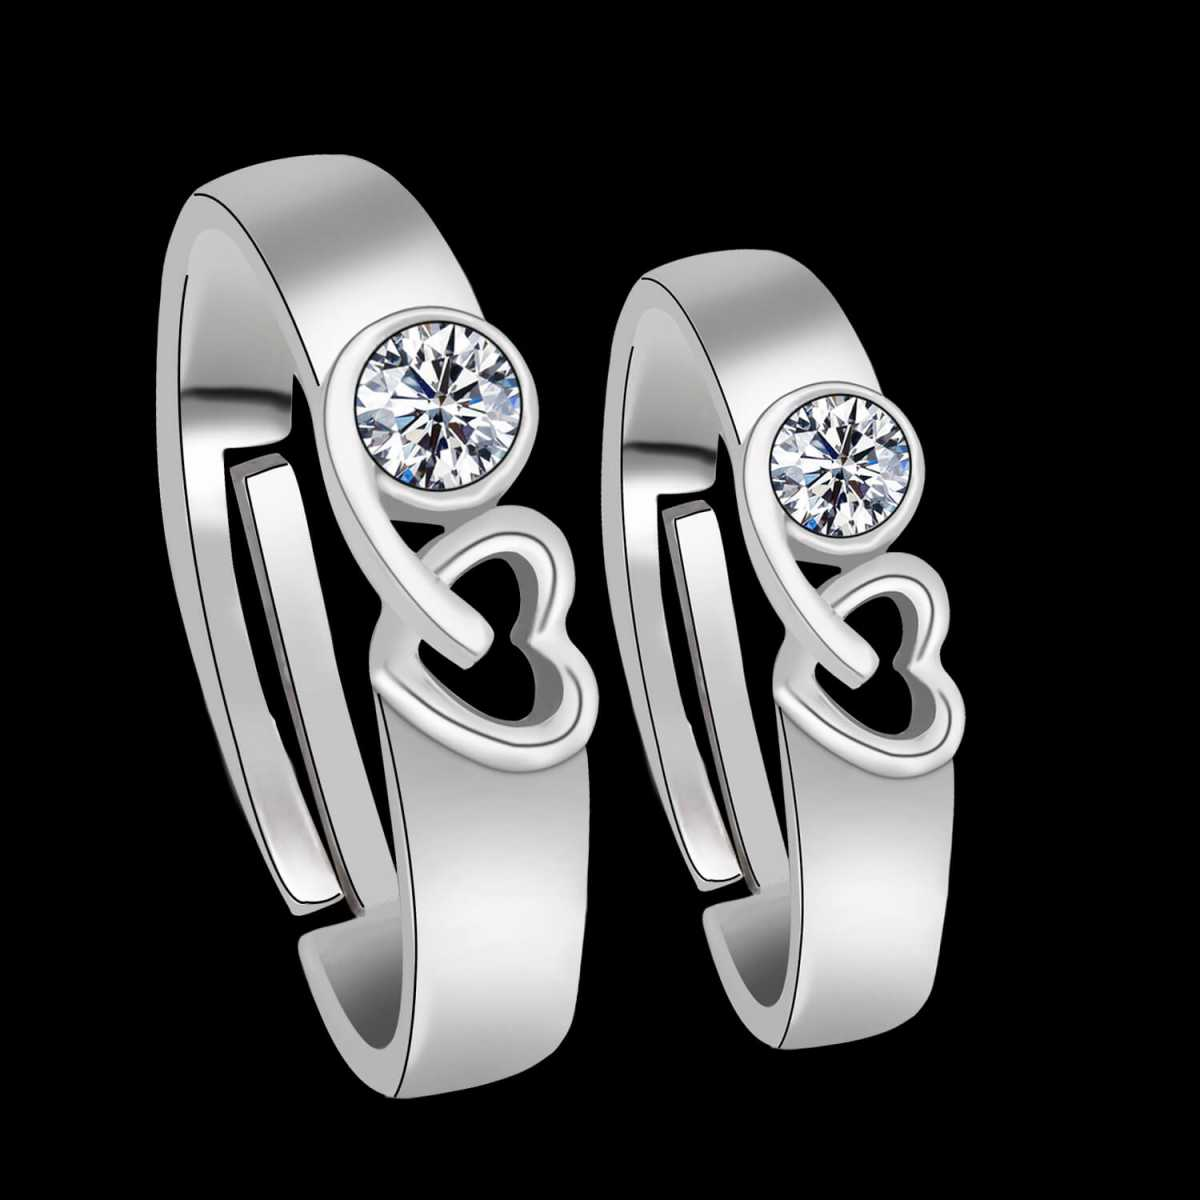 SilverPlated Exclusive Heart Design With Solitaire Diamond His And Her Adjustable proposal couple ring for Men And Women Jewellery